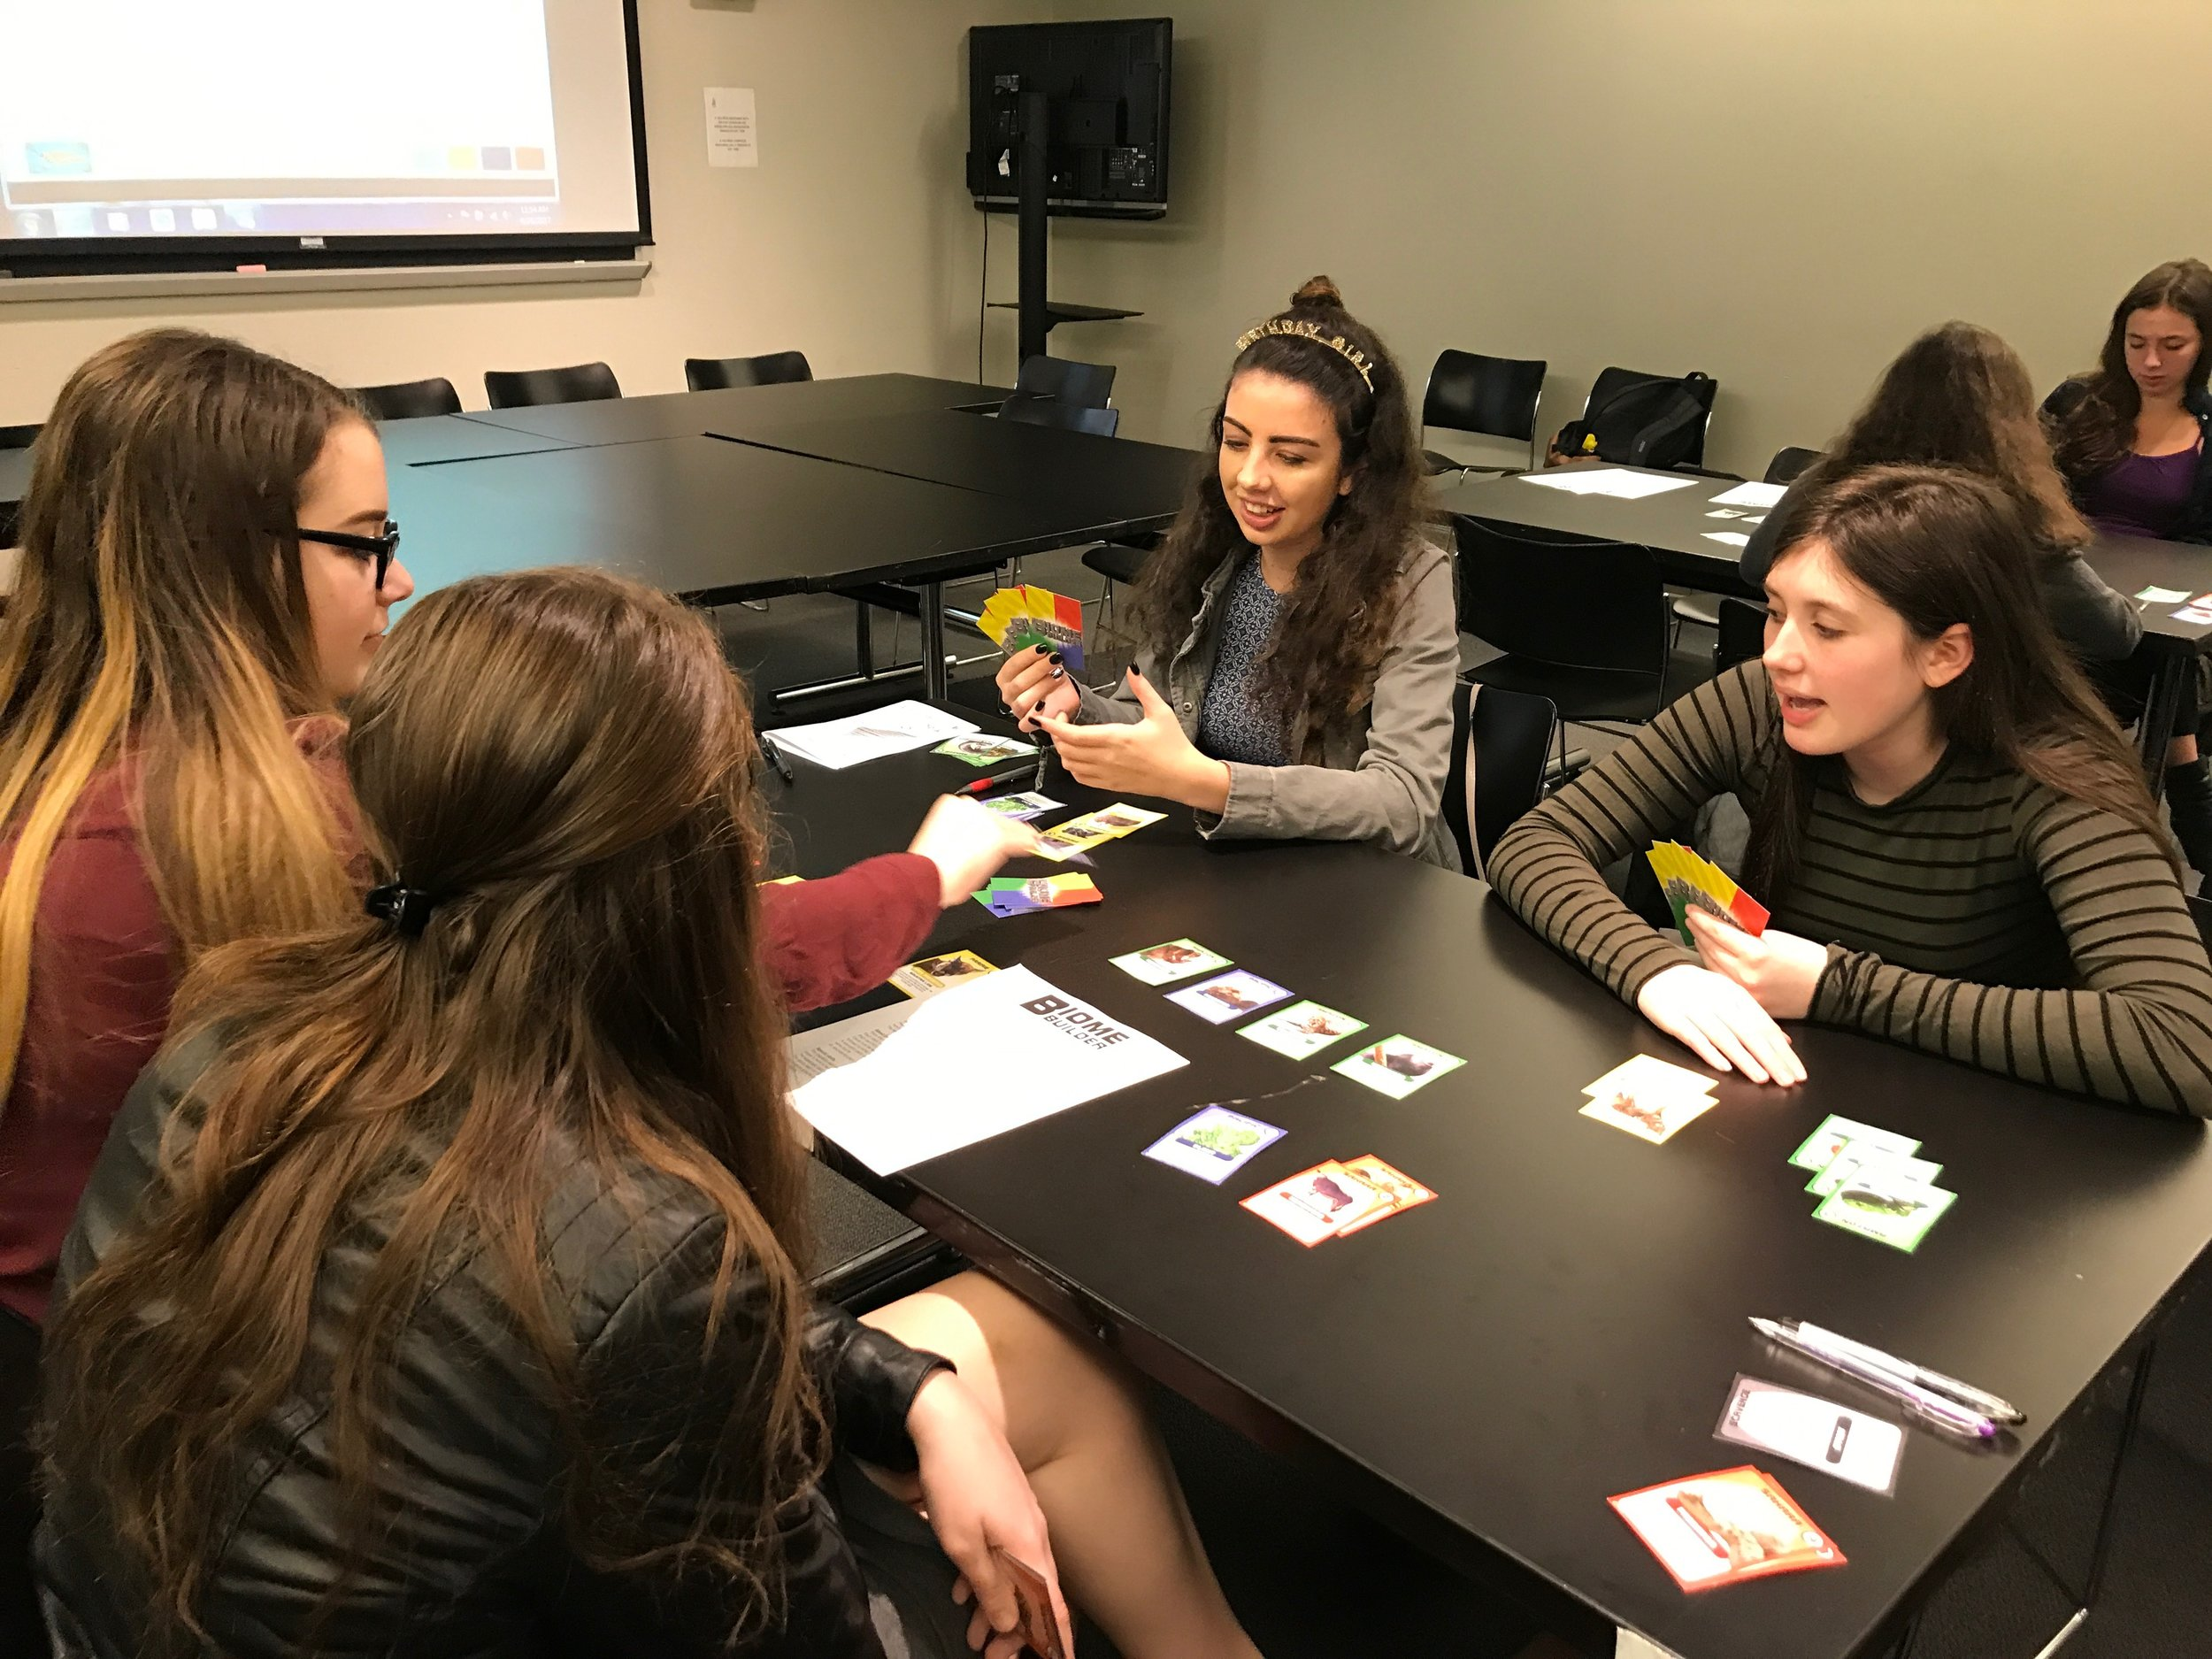 Playtesting at the 2017 STEMinism Conference